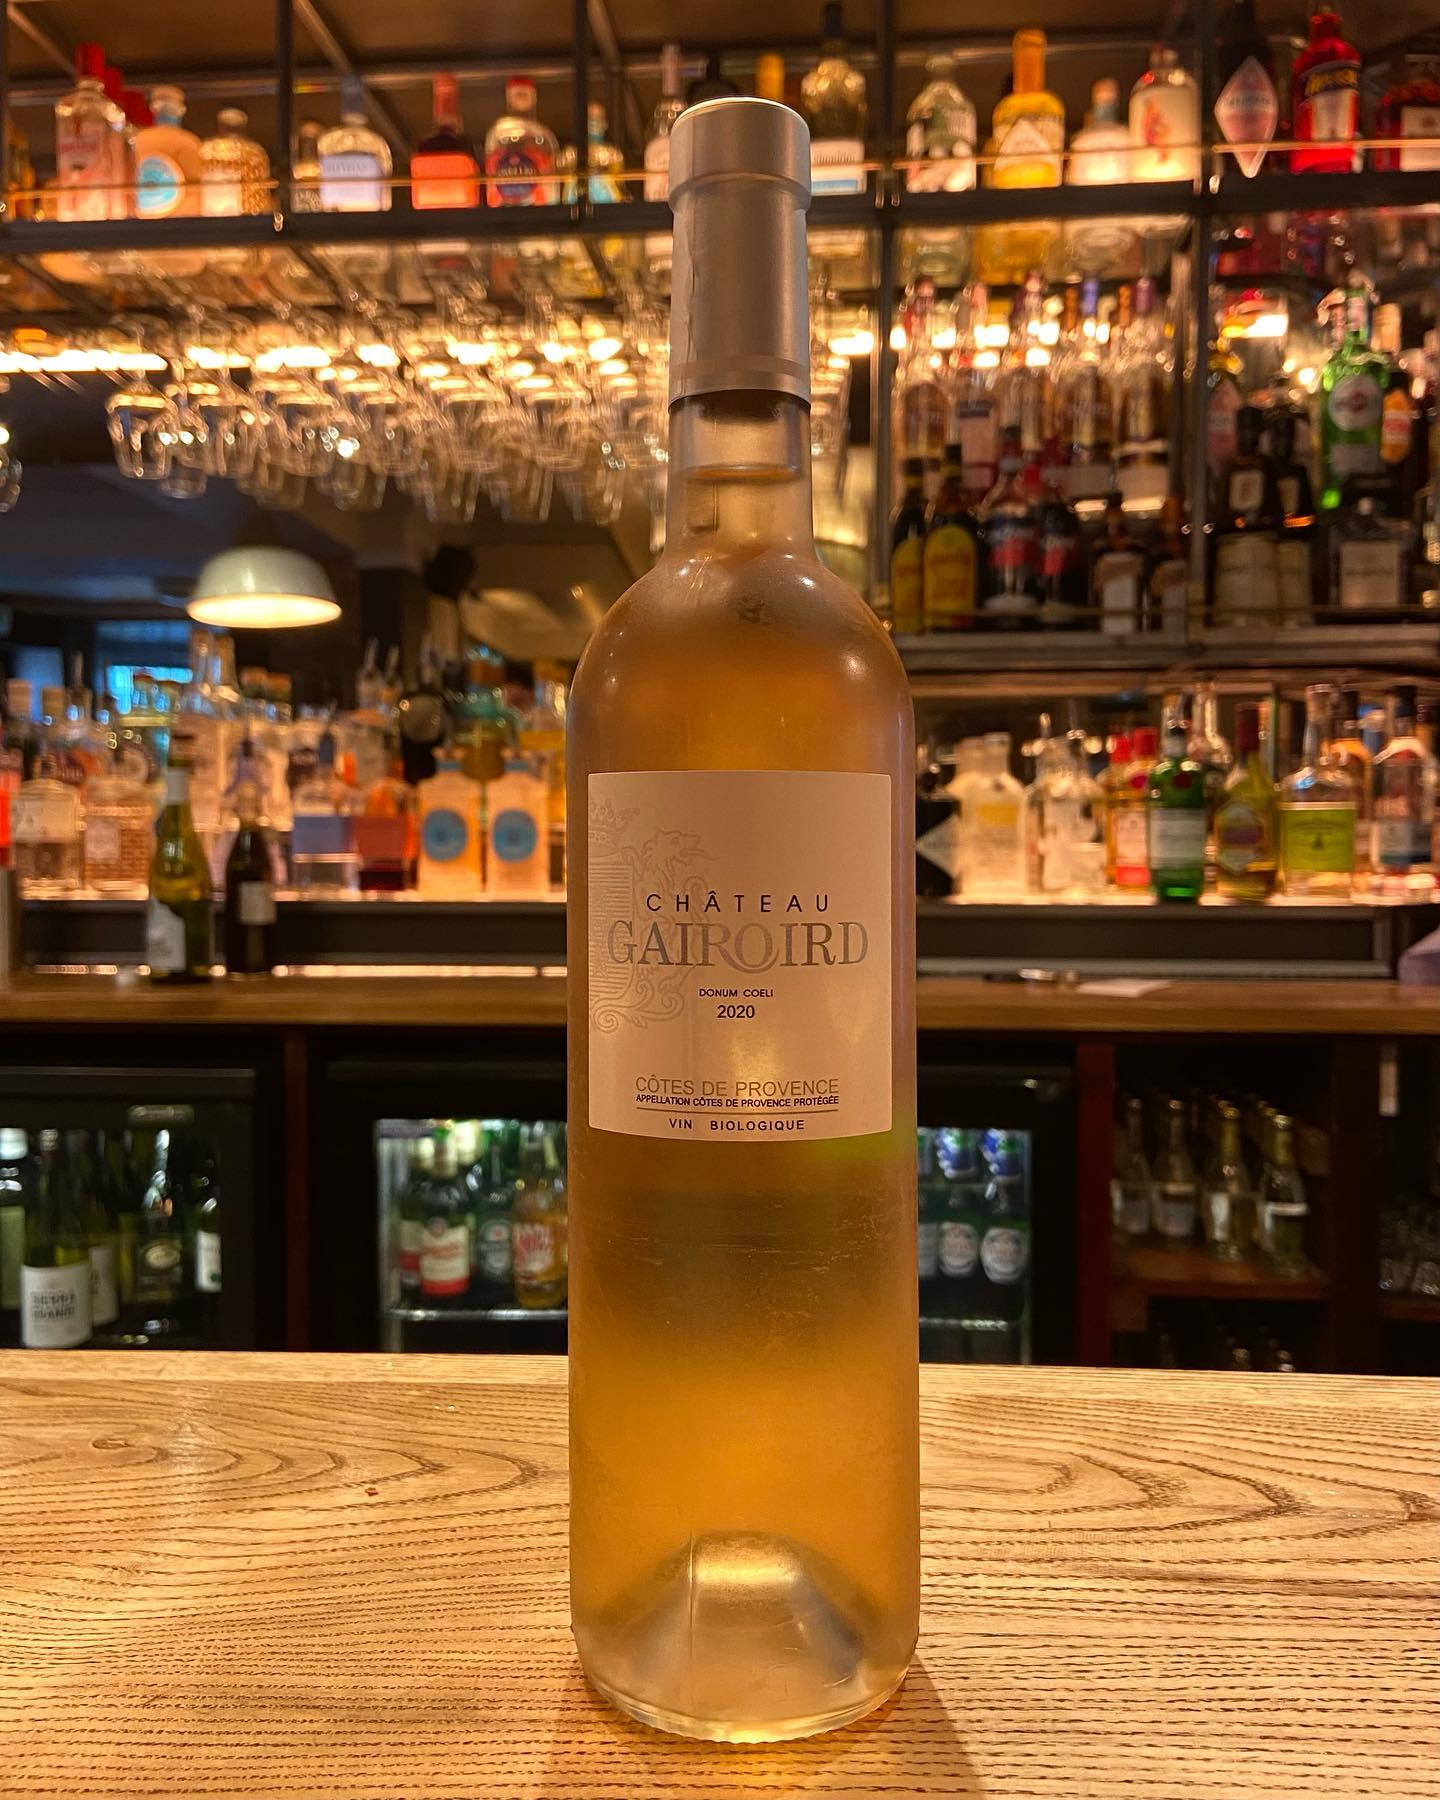 You can now enjoy your beautiful, organic rose Chateau Gairoird Cotes de Provence Rose by the glass!! Aromas of ripe peach, plum and cherry plum, which pairs perfectly with our plaice, octopus and Prawn dishes.   #highgate #hampstead #northlondon #pubsoflondon #wine #dinewithus #rose #rose lovers #cotedeprovance #refreshing #fridaynight #weekend